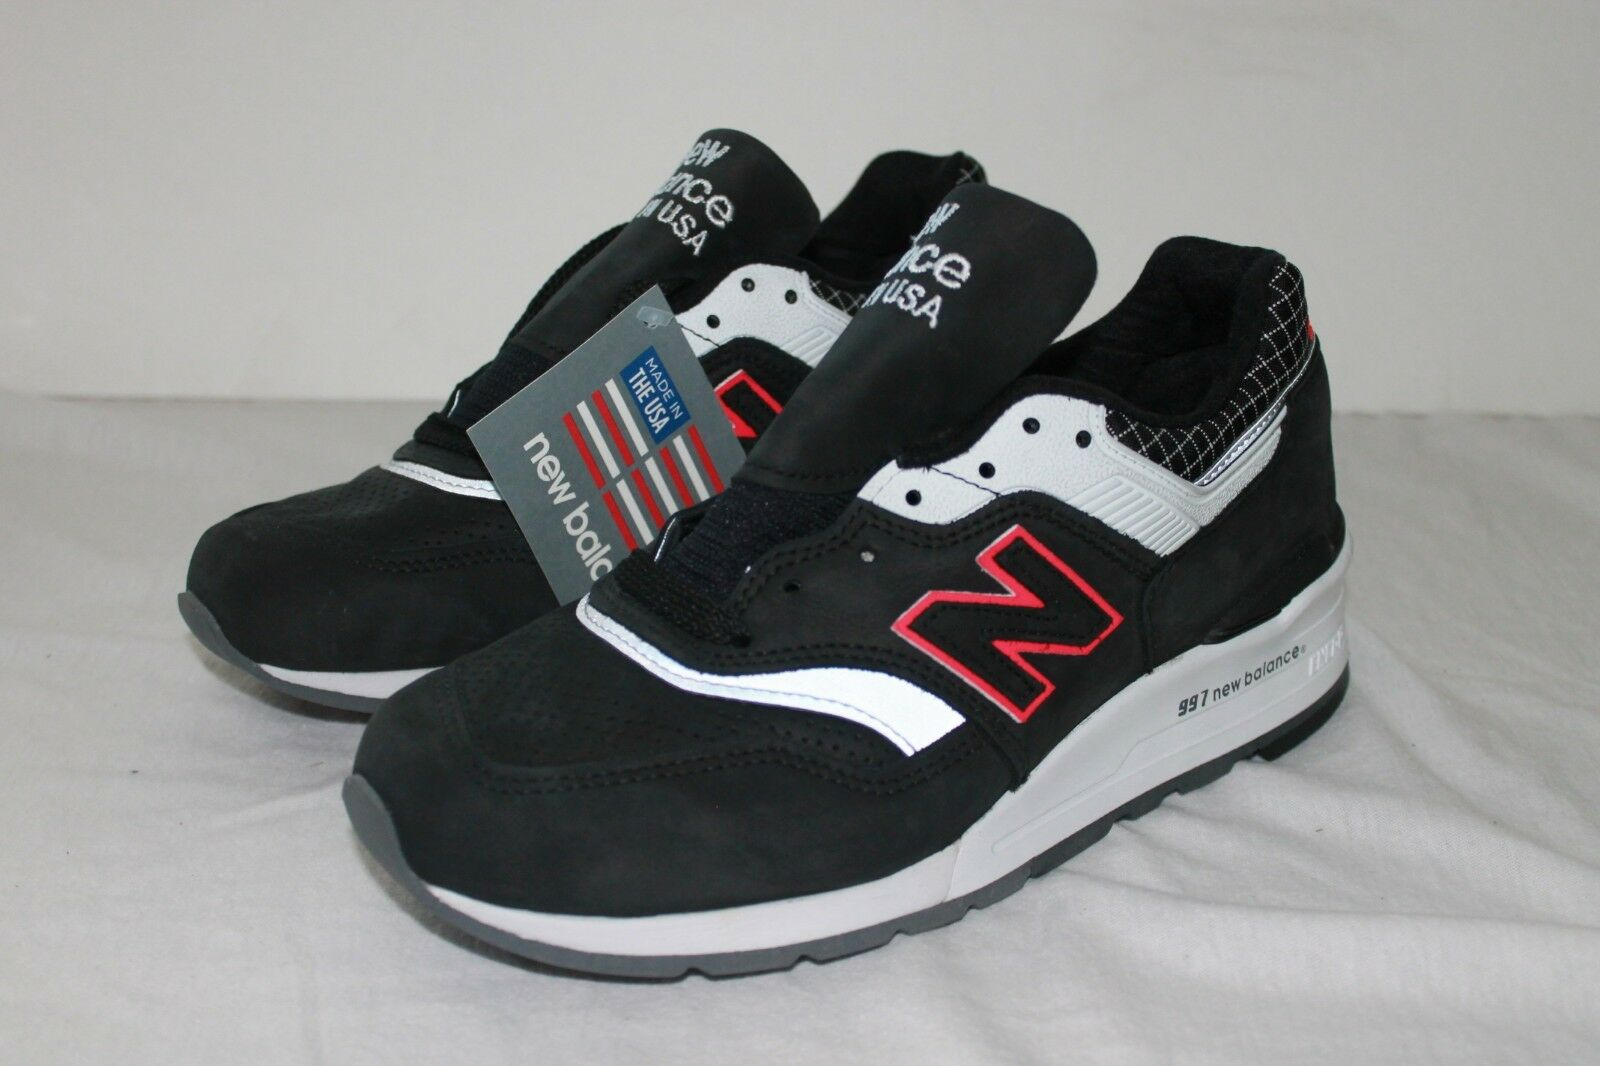 New Balance Men's Made in USA Sneakers M997CR Black Grey Pink Red Sz 6